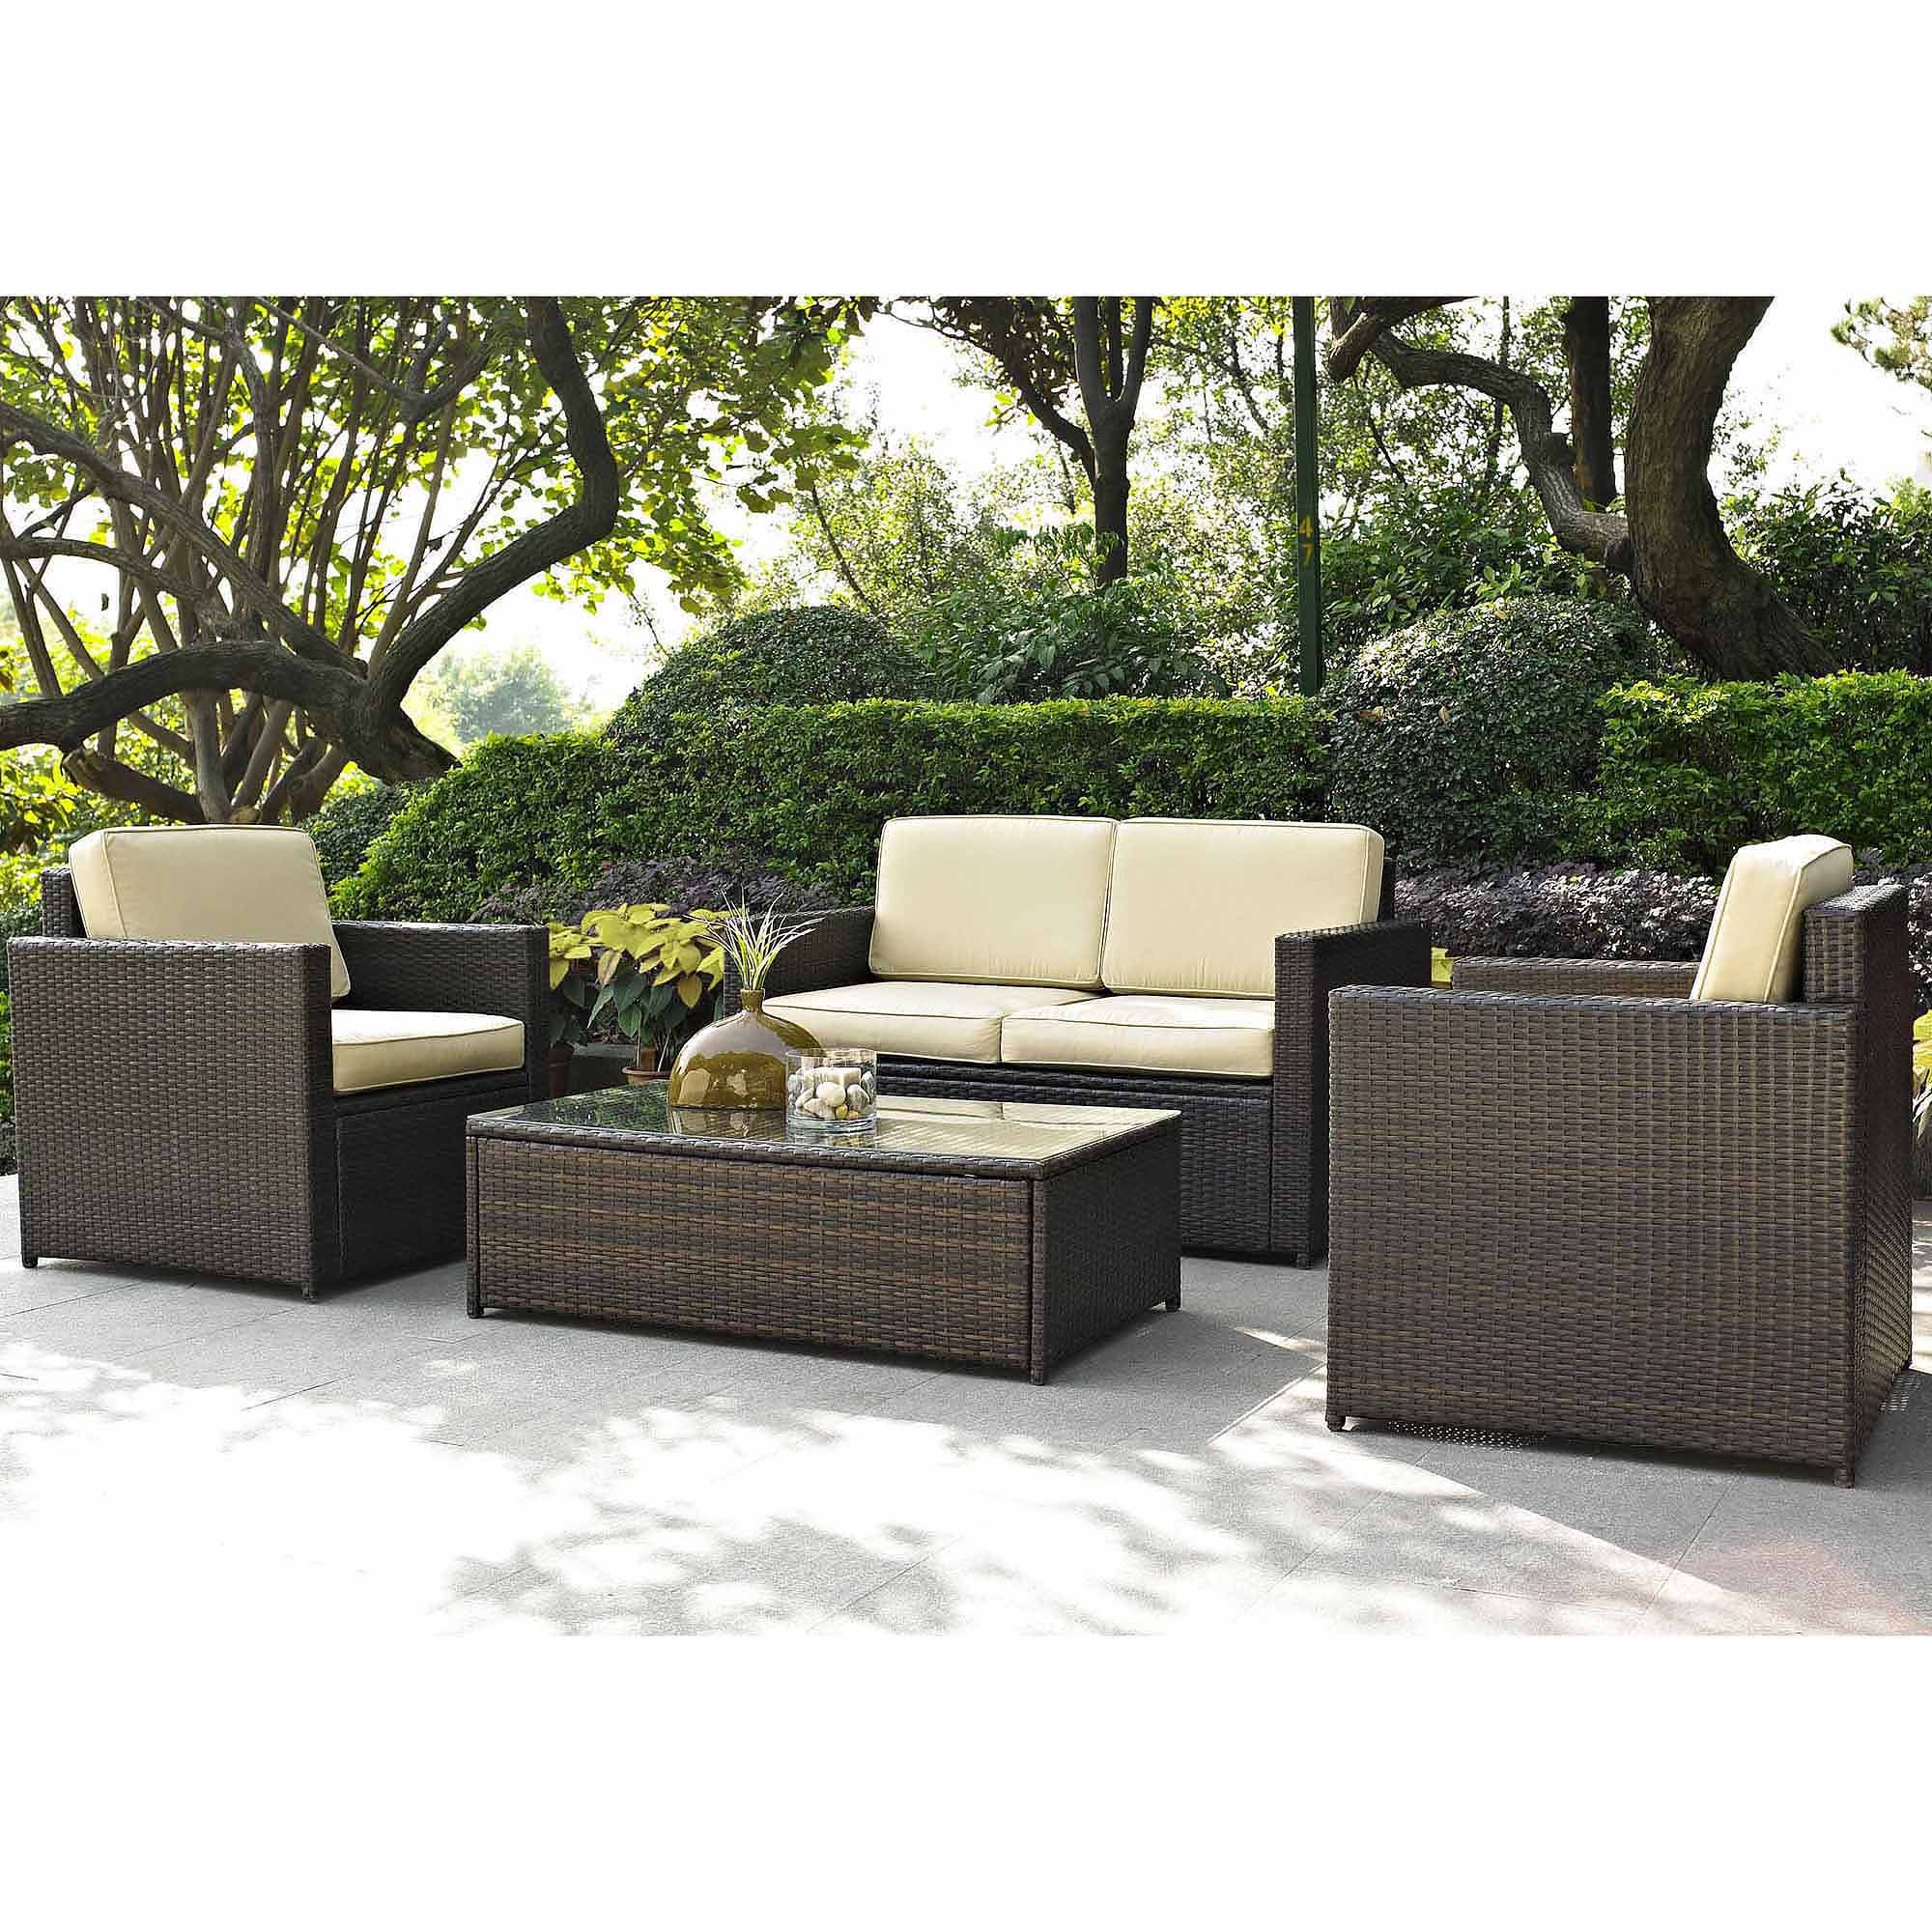 wicker patio furniture best choice products outdoor garden patio 4pc cushioned seat black wicker  sofa ITTPMJW